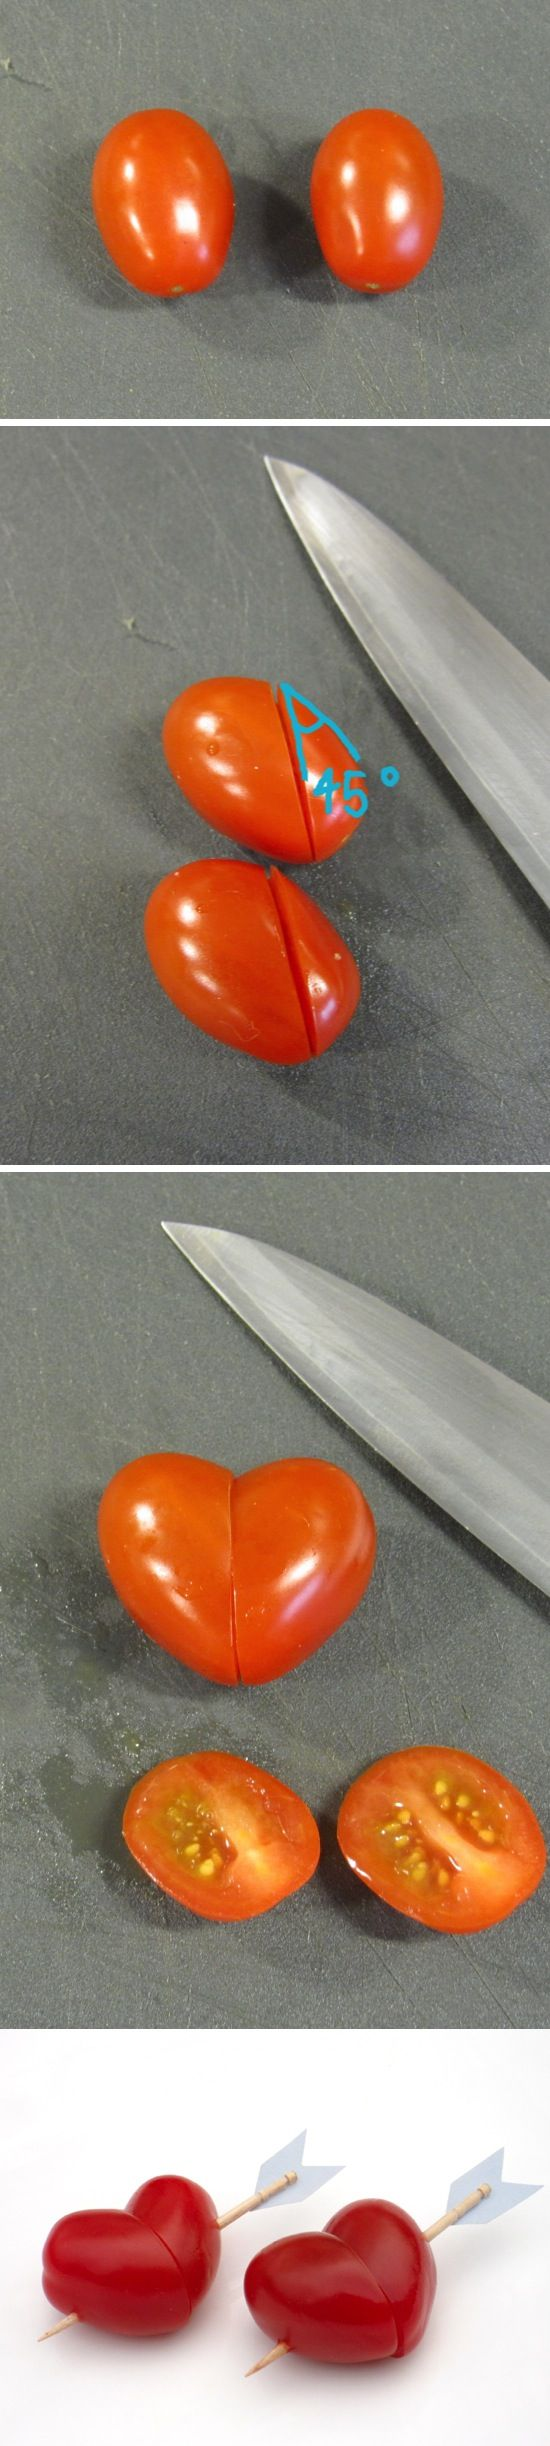 Cherry Tomato Hearts- something chris would do.